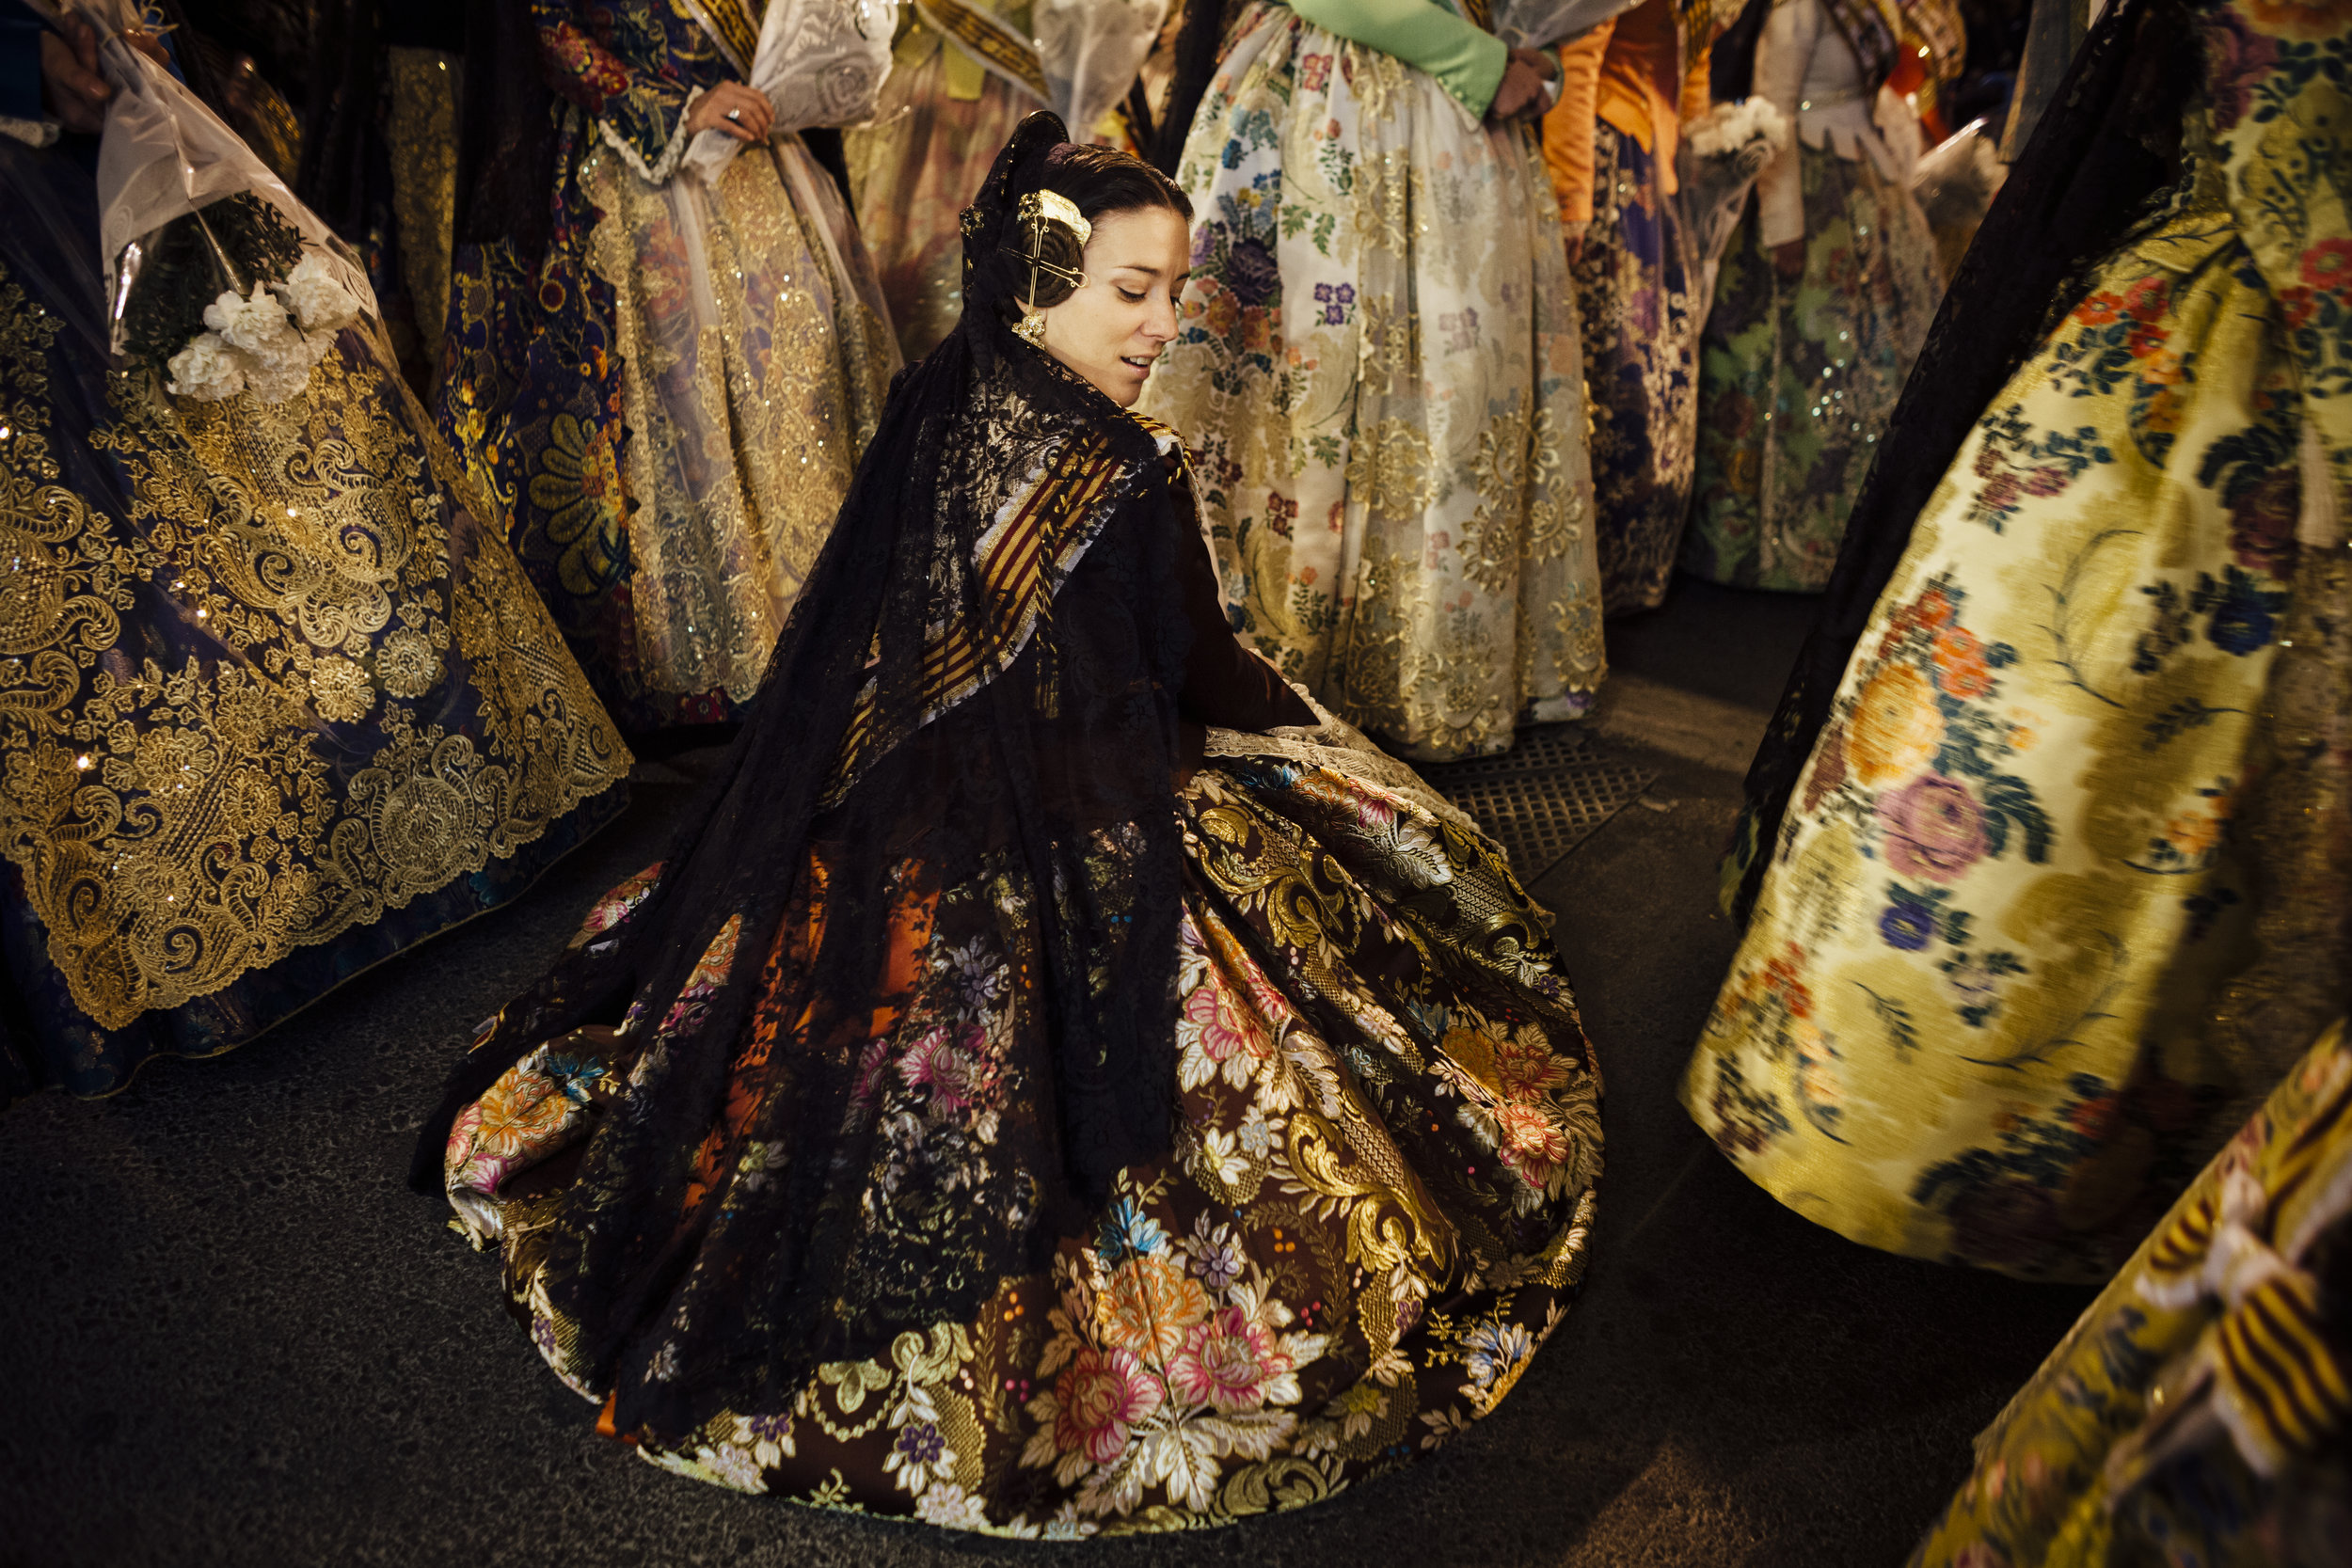 A woman participating in the Fallas, a traditional celebration held in commemoration of Saint Joseph, sits on the ground in Valencia, Spain, Thursday, March 18, 2010.